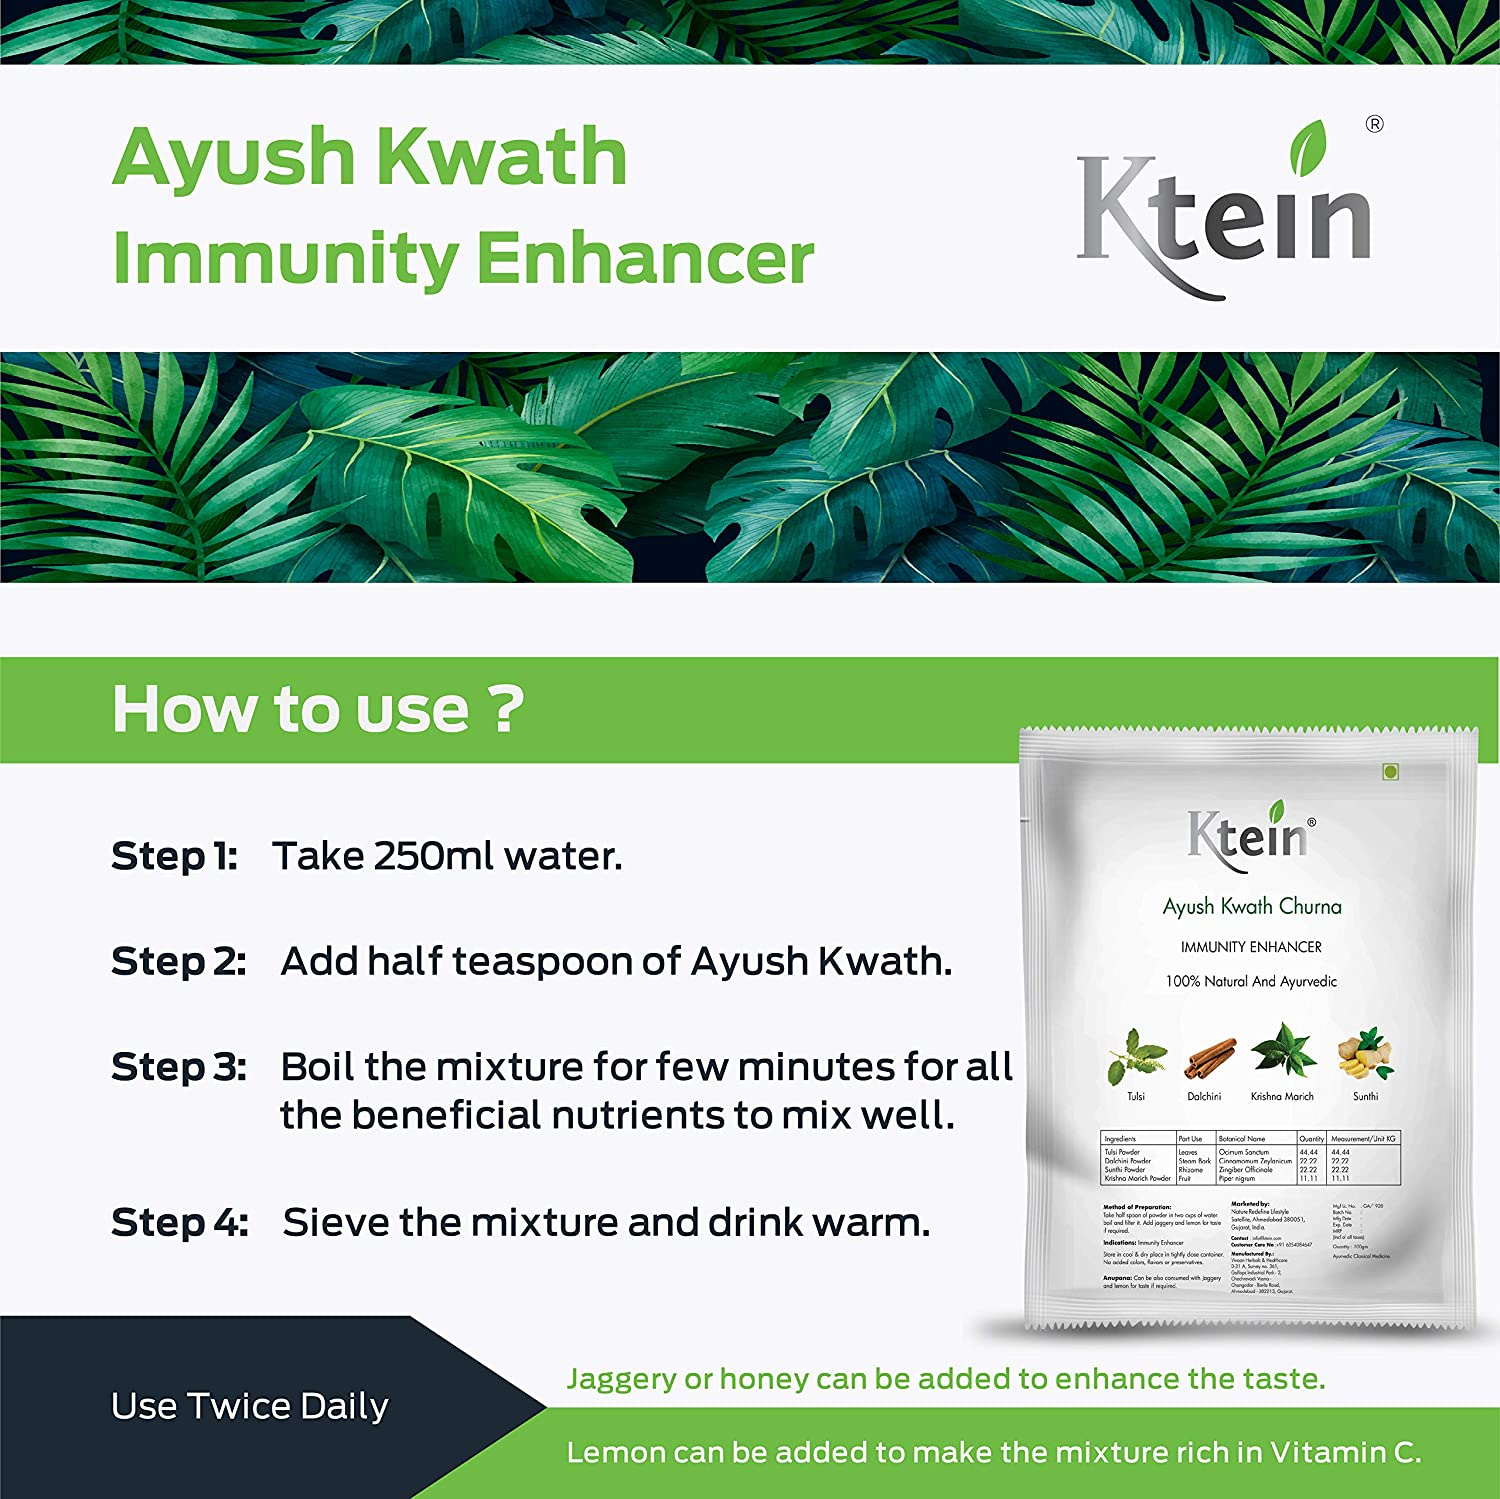 Ktein Ayush Kwath Immunity Enhancer 100gm - Ktein Cosmetics - Essencec Of Natural Hair Care Product